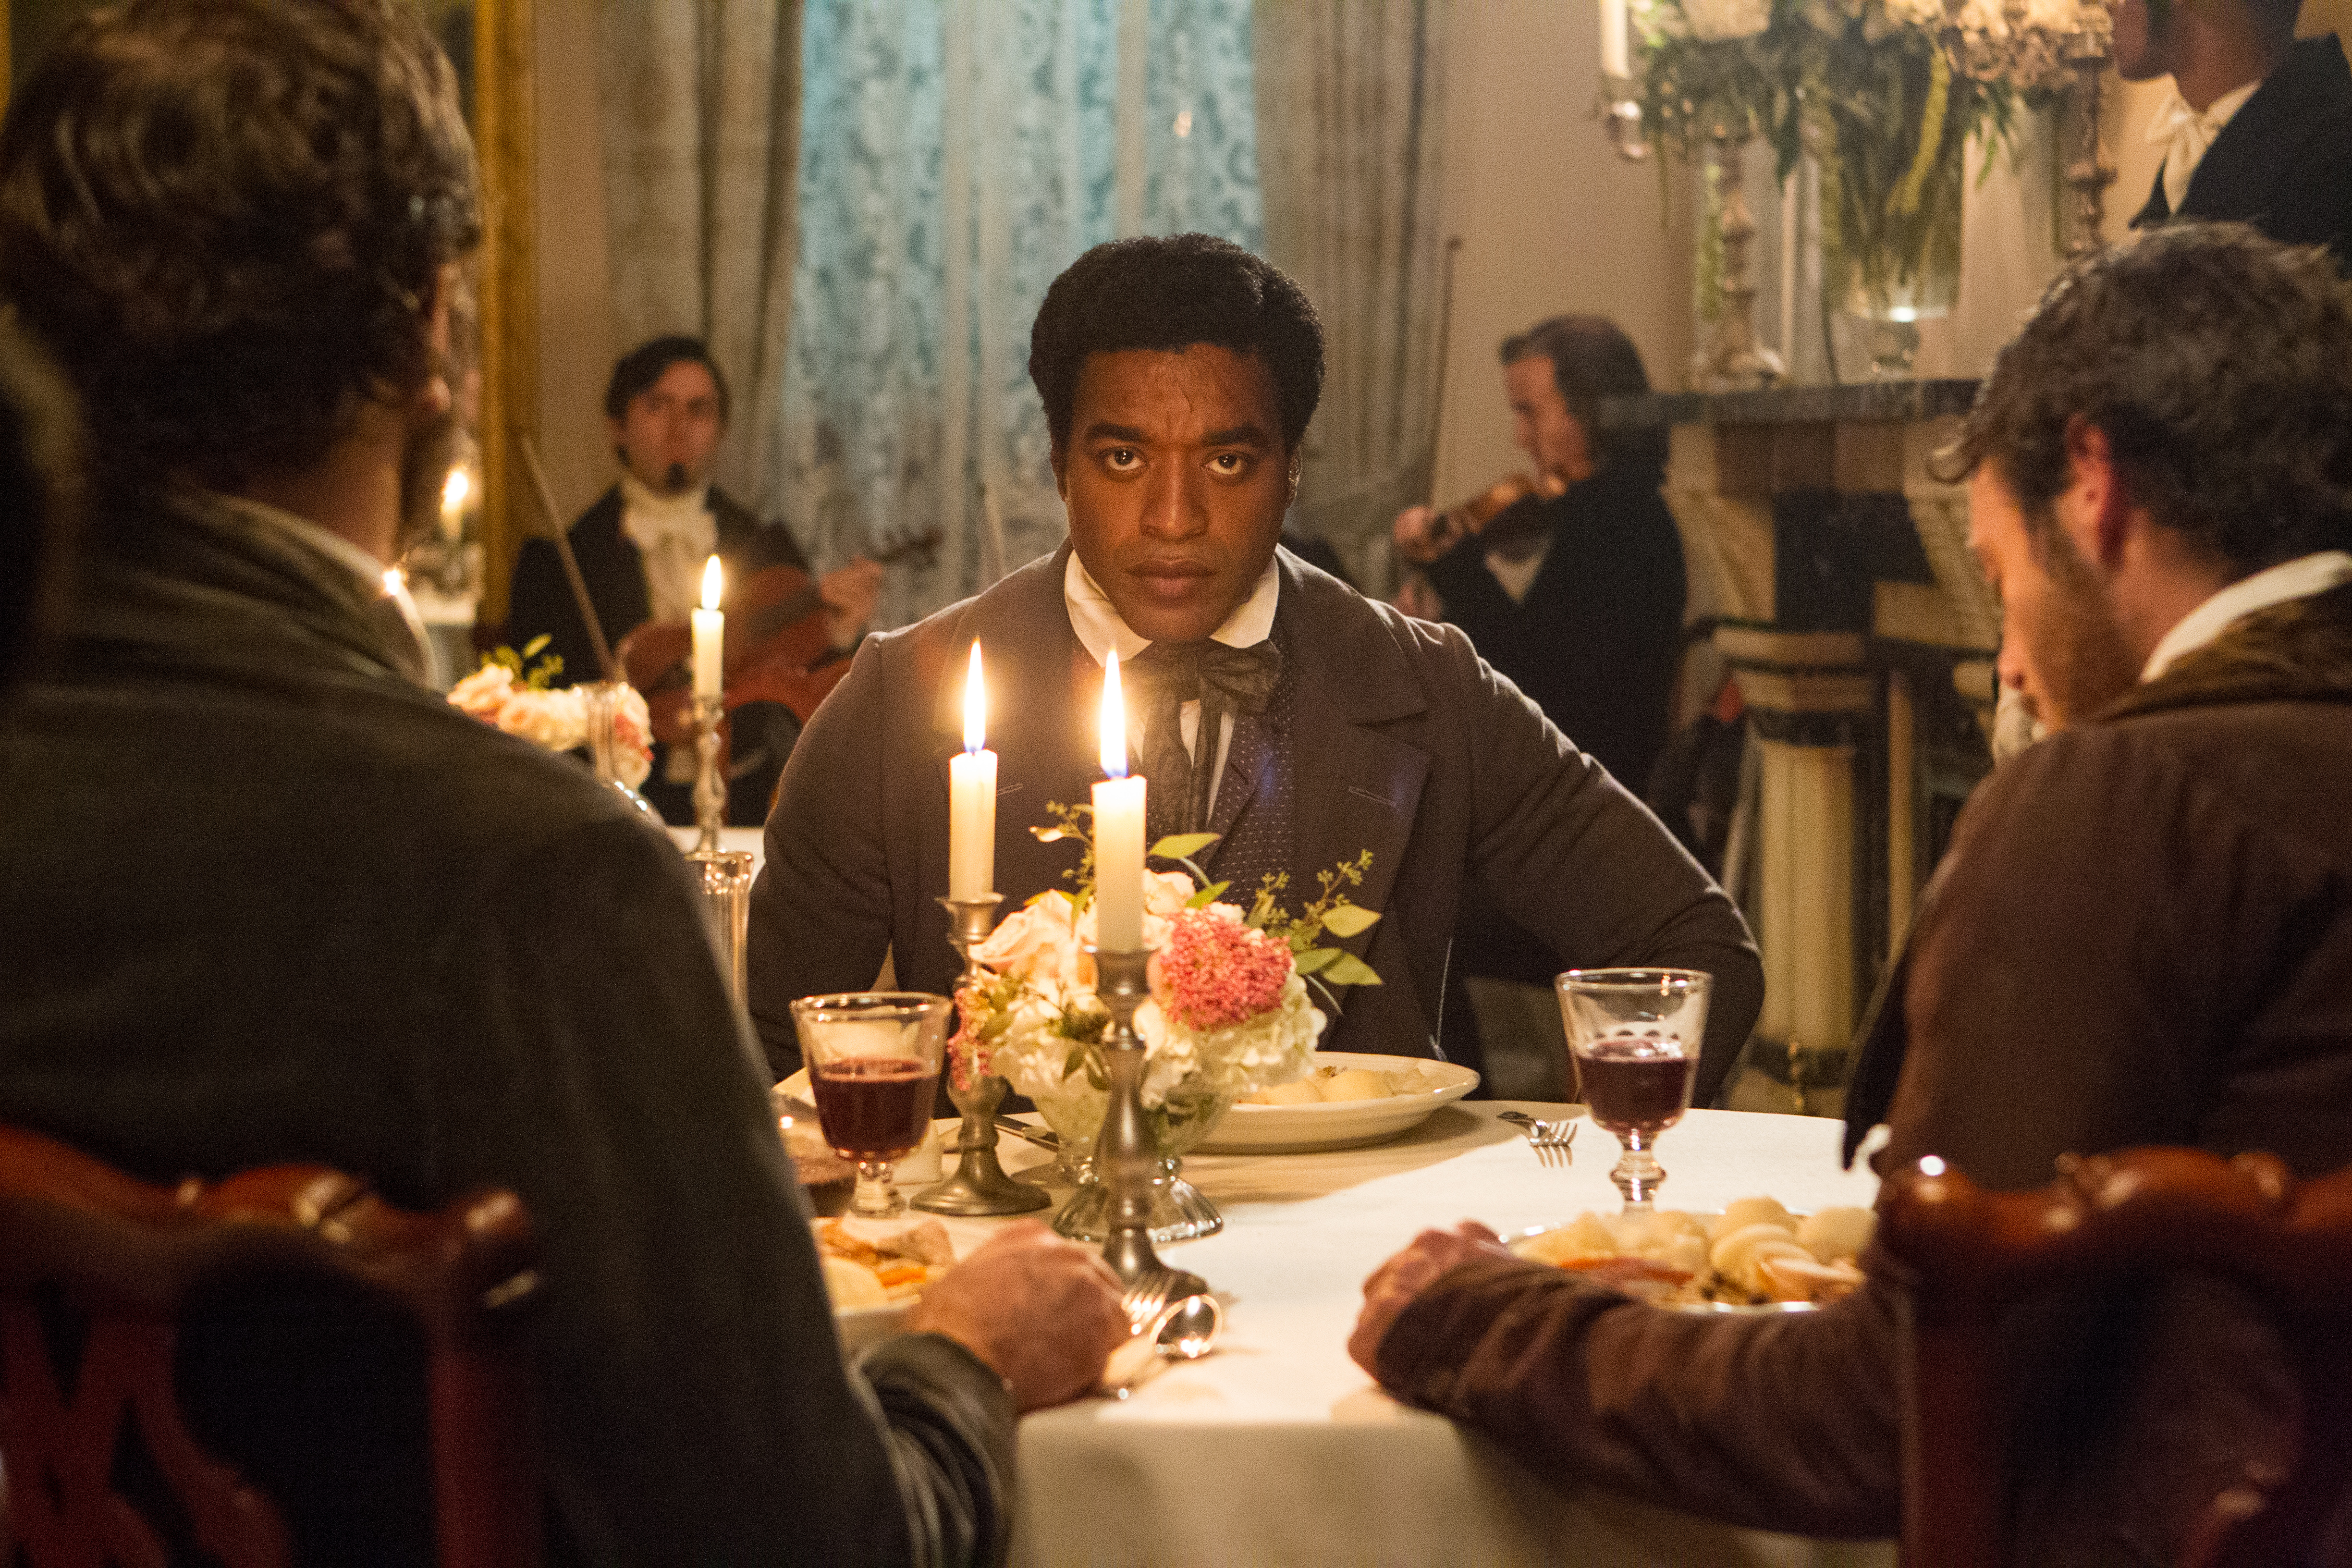 """Chiwetel Ejiofor as """"Solomon Northup"""" in 12 Years a Slave, winner of the People's Choice Award at the 2013 Toronto Film Festival"""